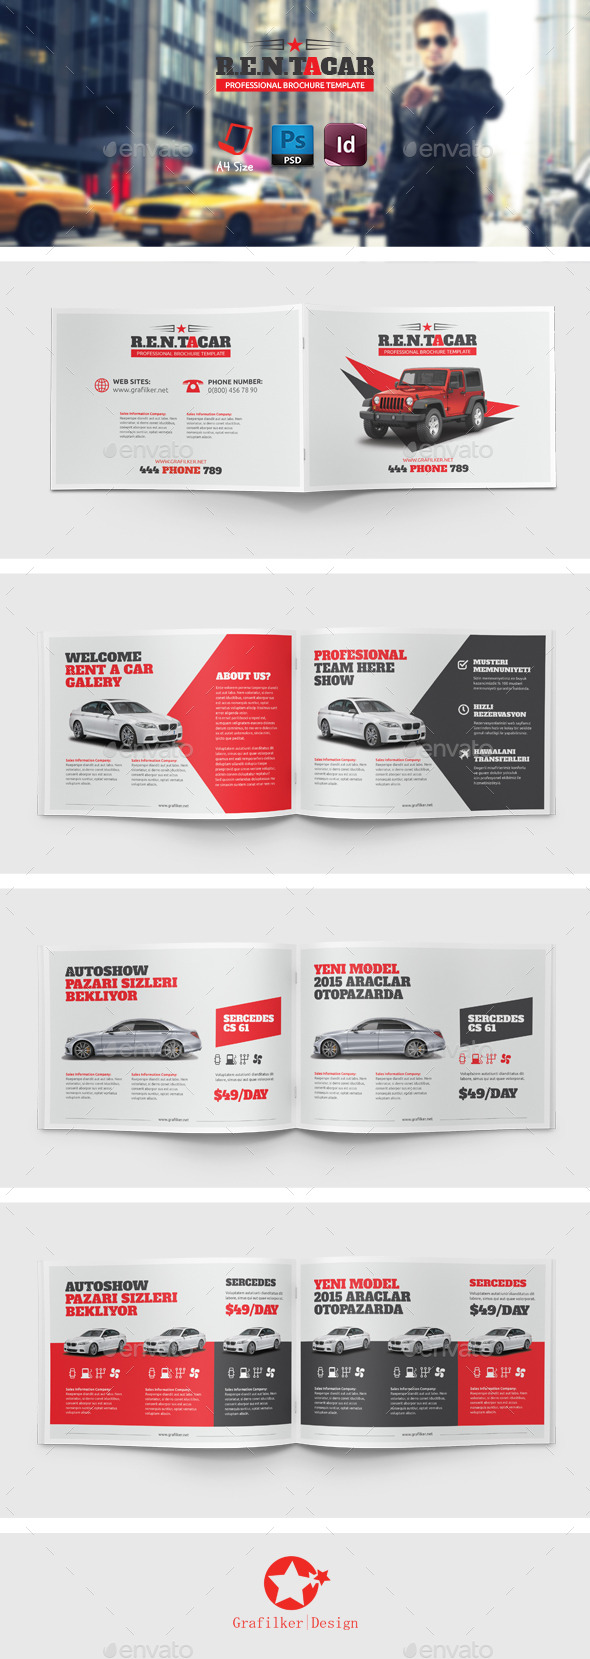 Rent a car brochure templates by grafilker graphicriver for Automobile brochure design